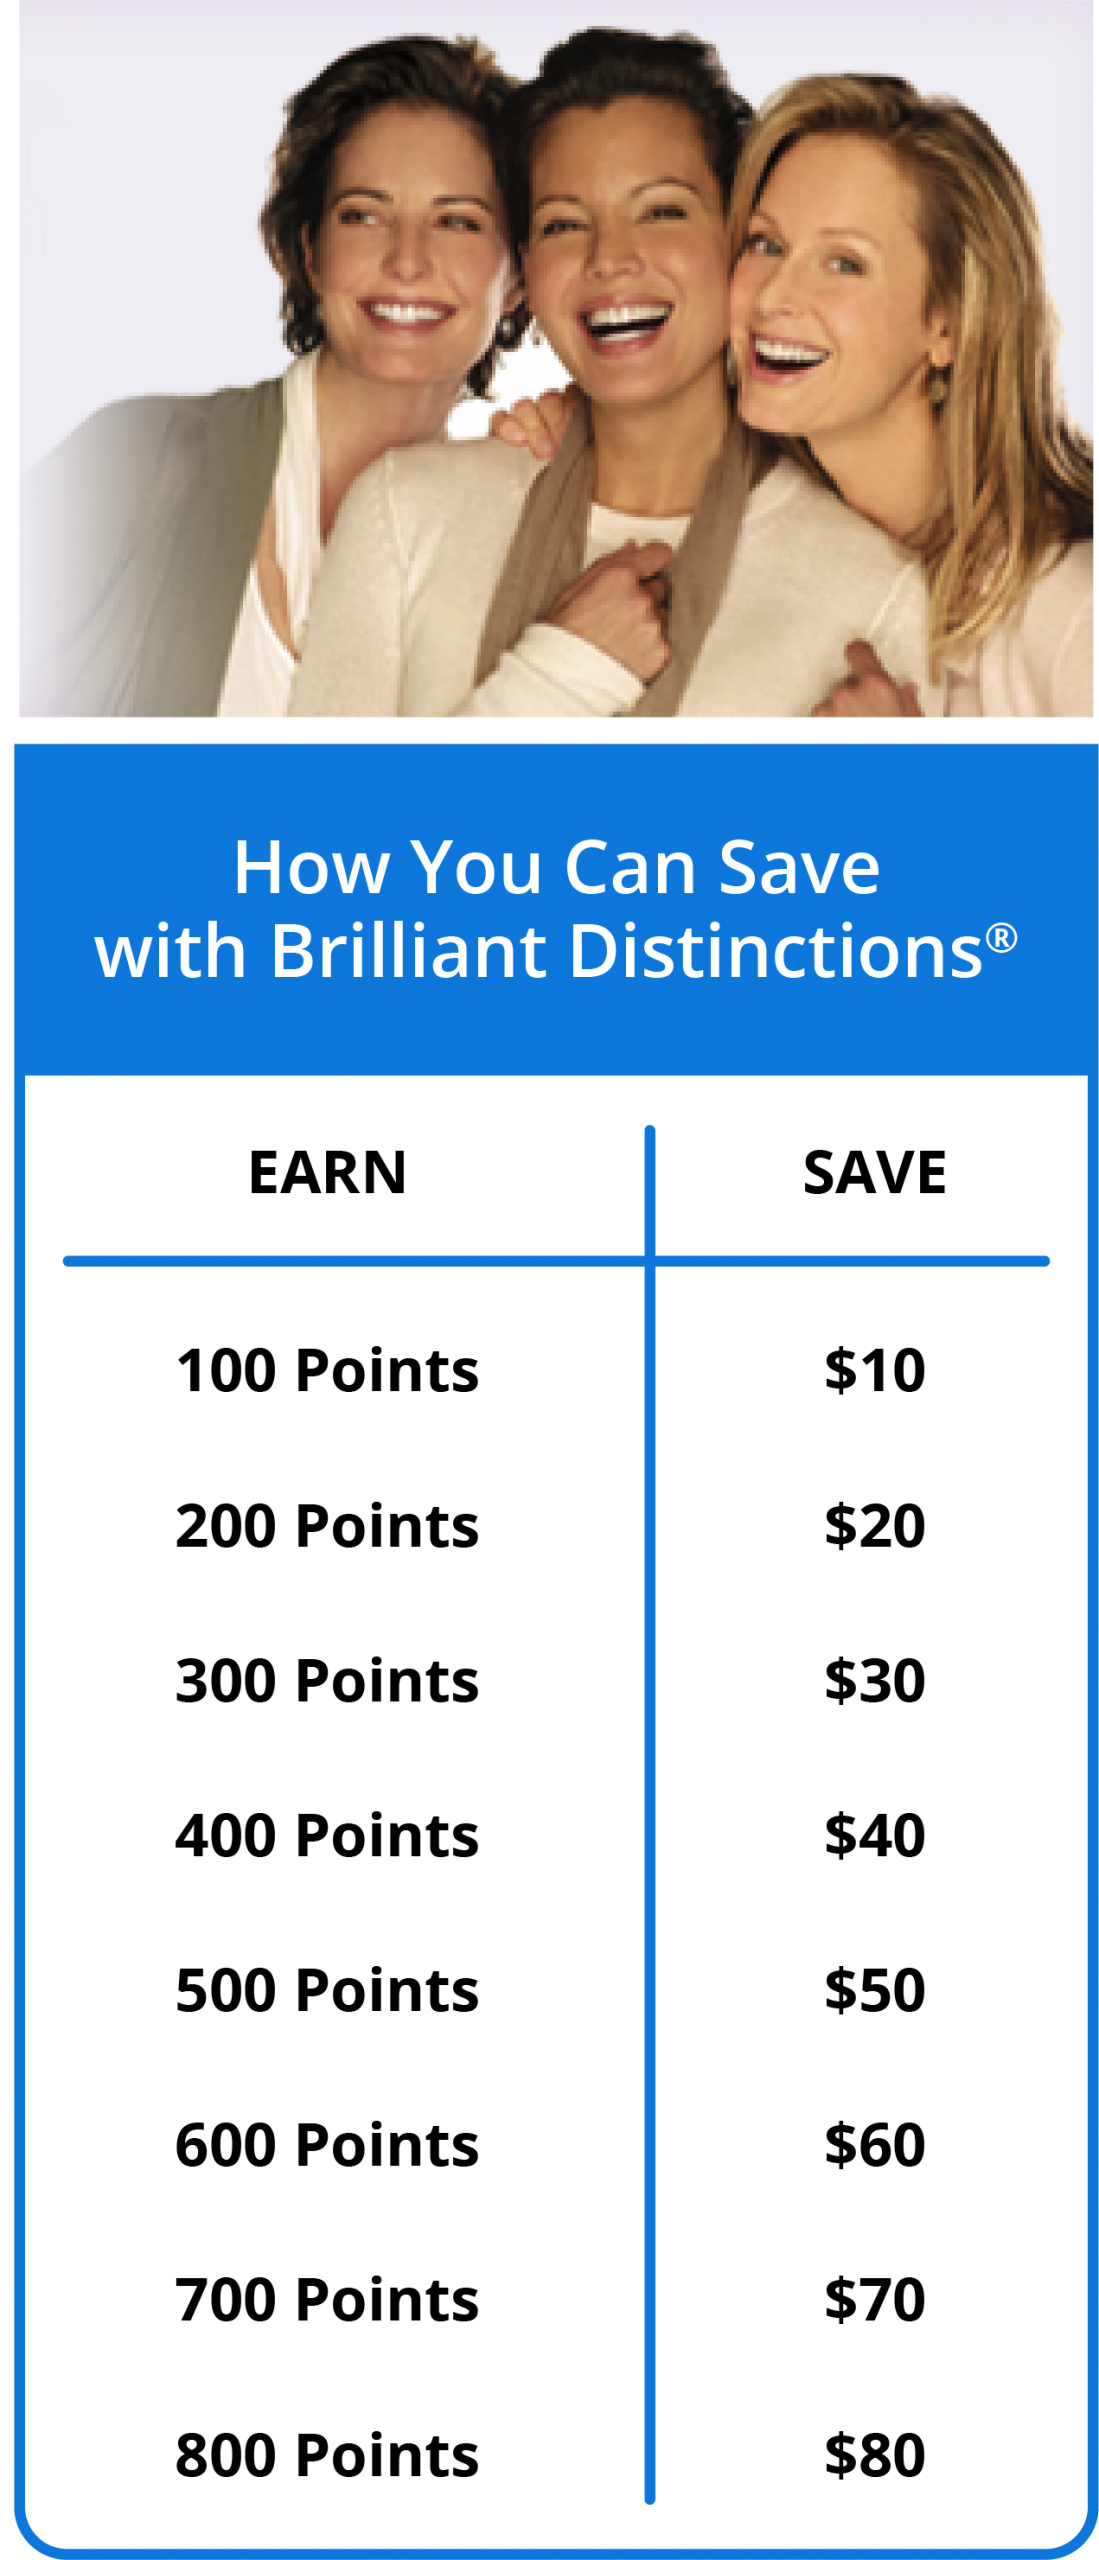 Save with Brilliant Distinctions